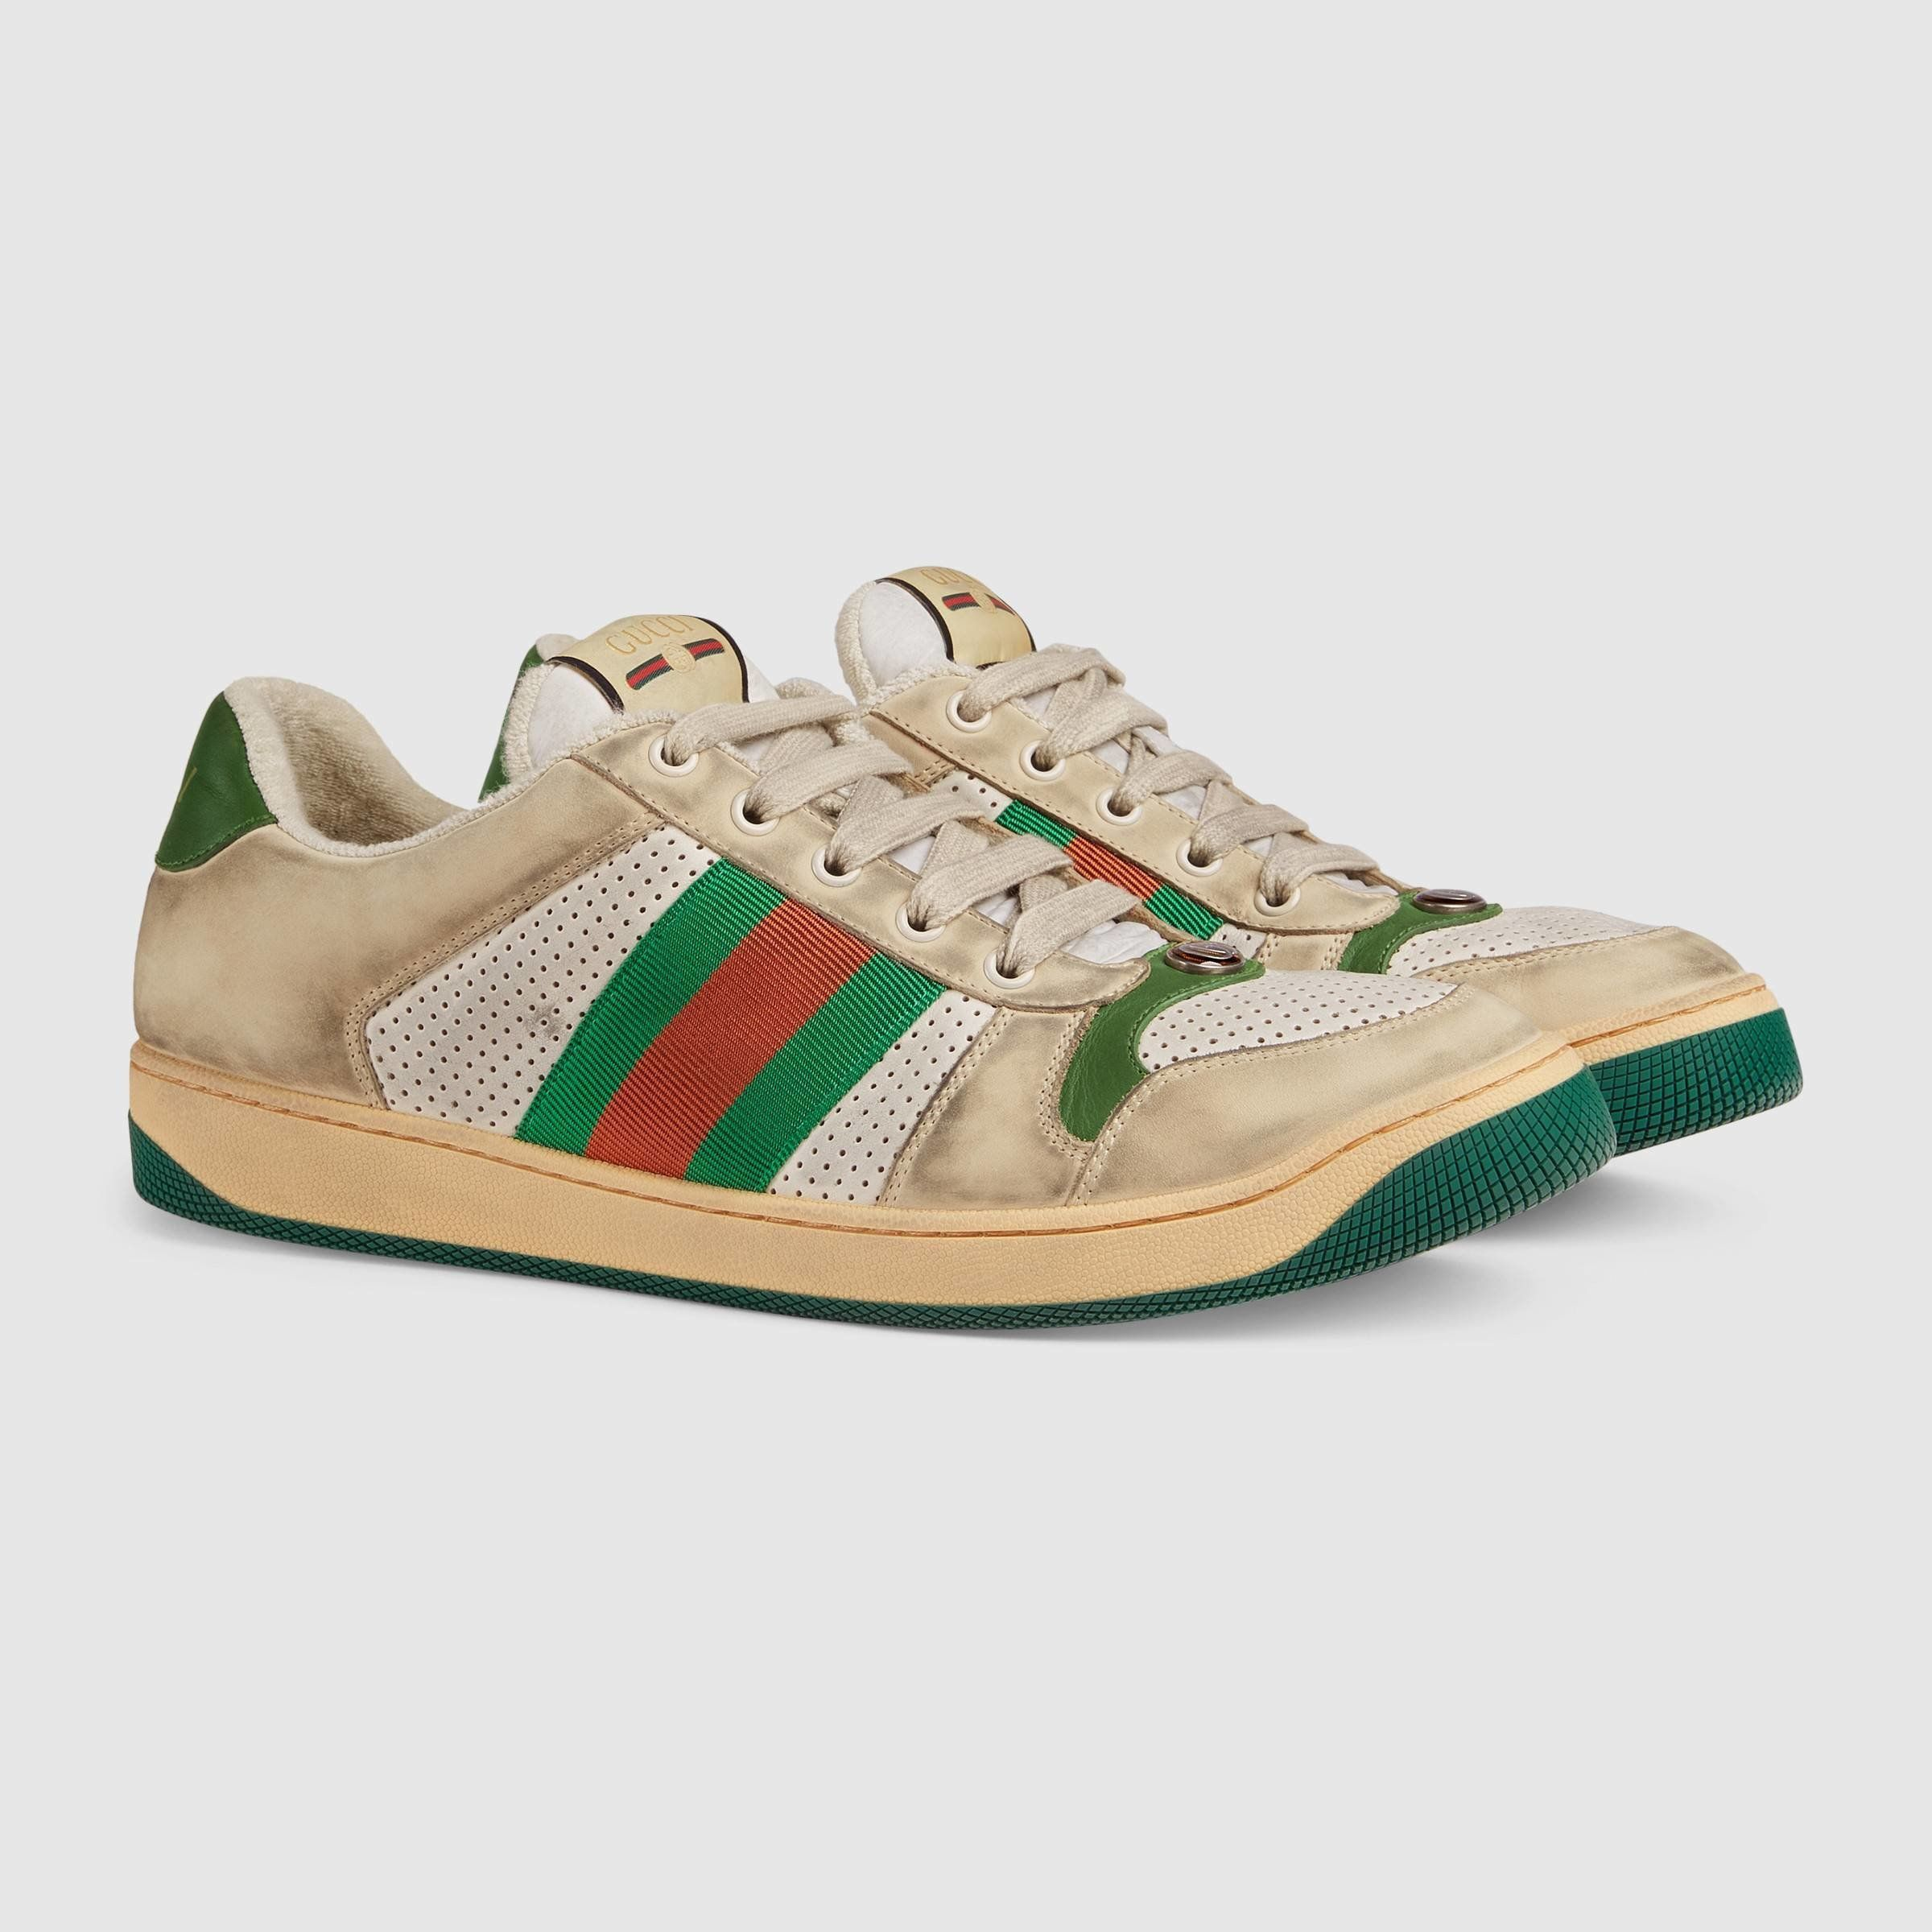 gucci-is-selling-sneakers-that-are-purposely-dirty-for-almost-900